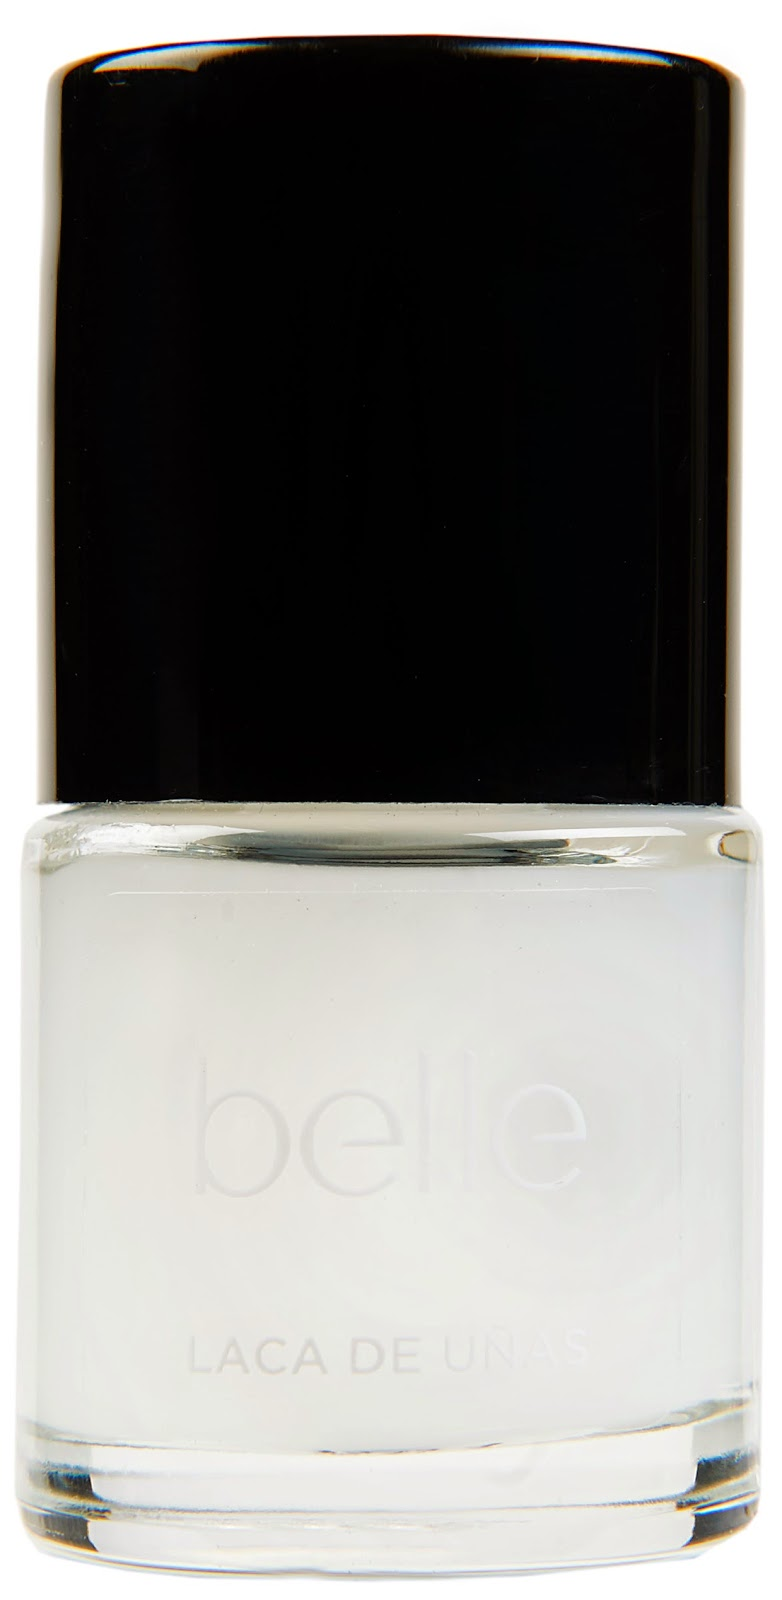 Top Coat matificante de belle&MAKE-UP